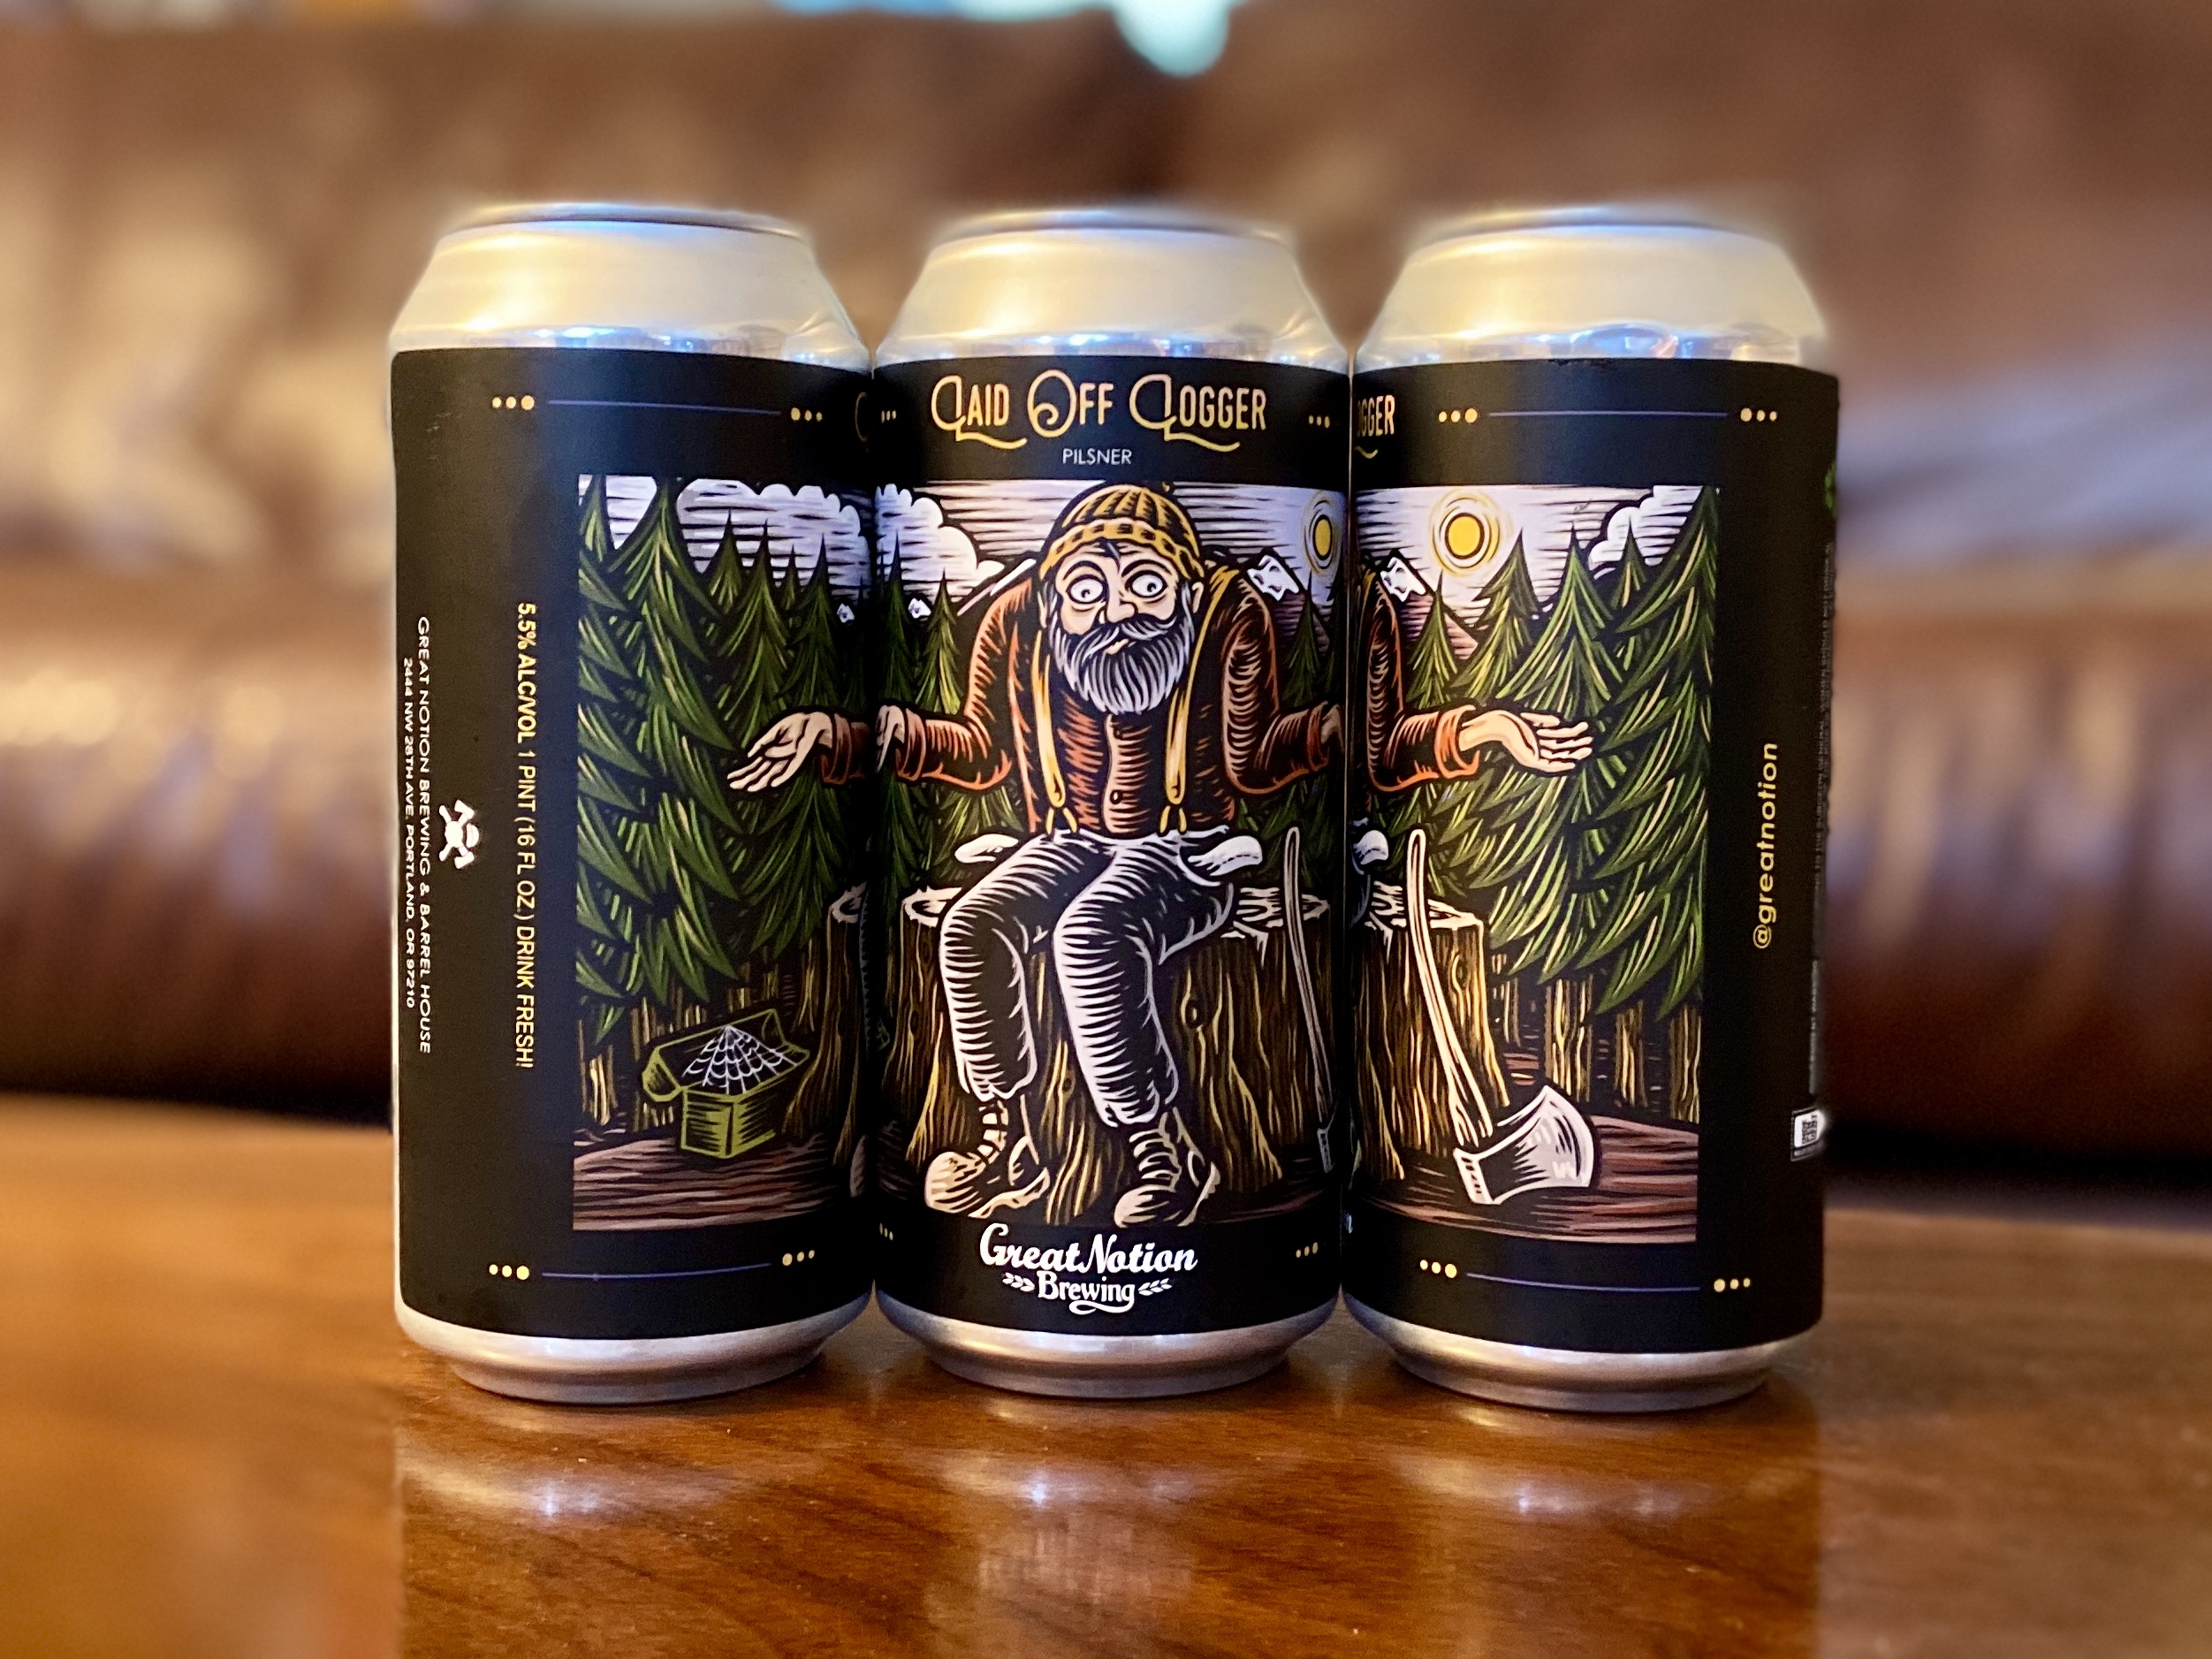 Great Notion Brewing's Laid Off Logger benefits its laid off employees due to the COVID-19 pandemic.